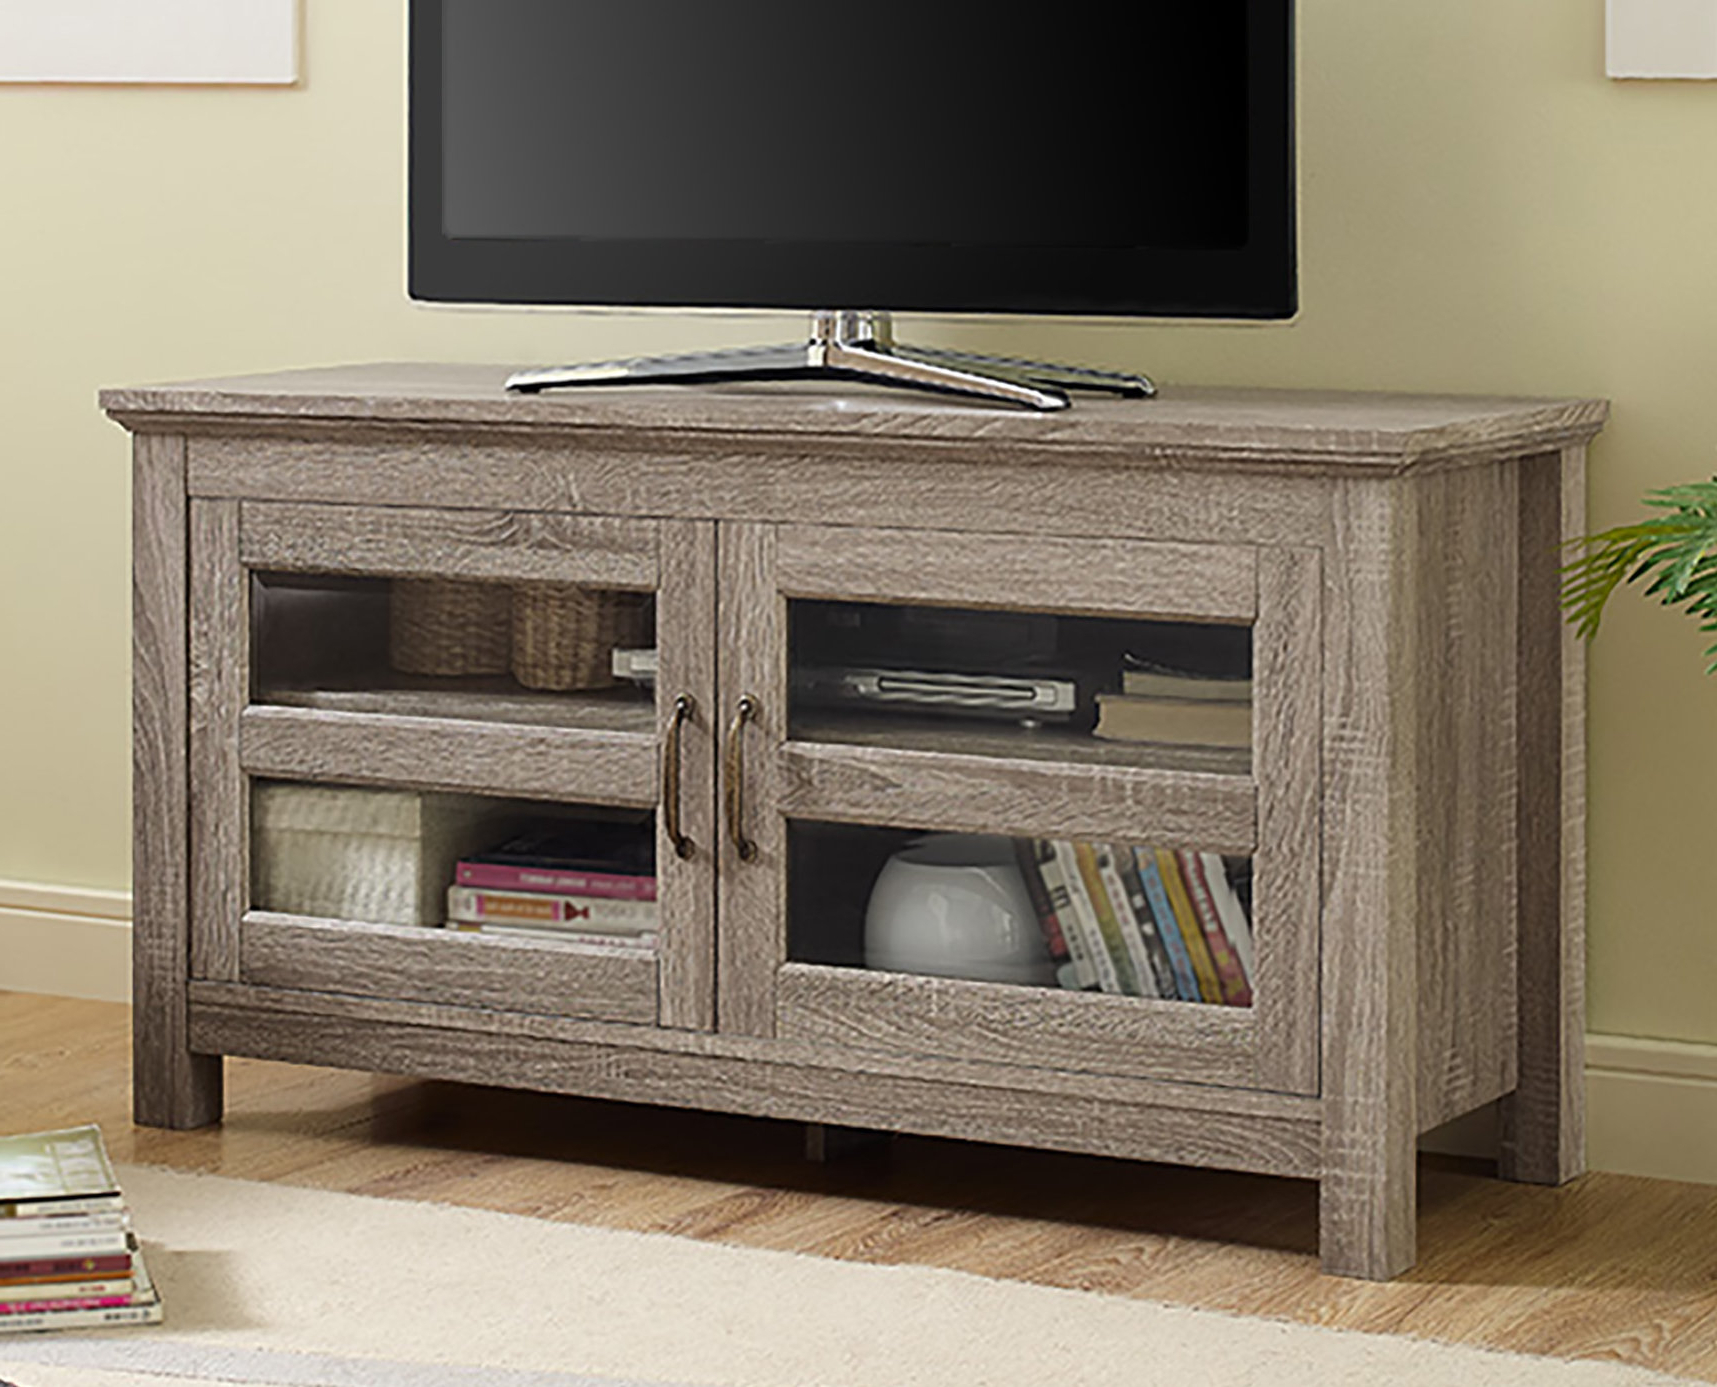 Most Recent Cabinet Tv Stands Pertaining To Tv Stands & Entertainment Centers You'll Love (View 6 of 20)